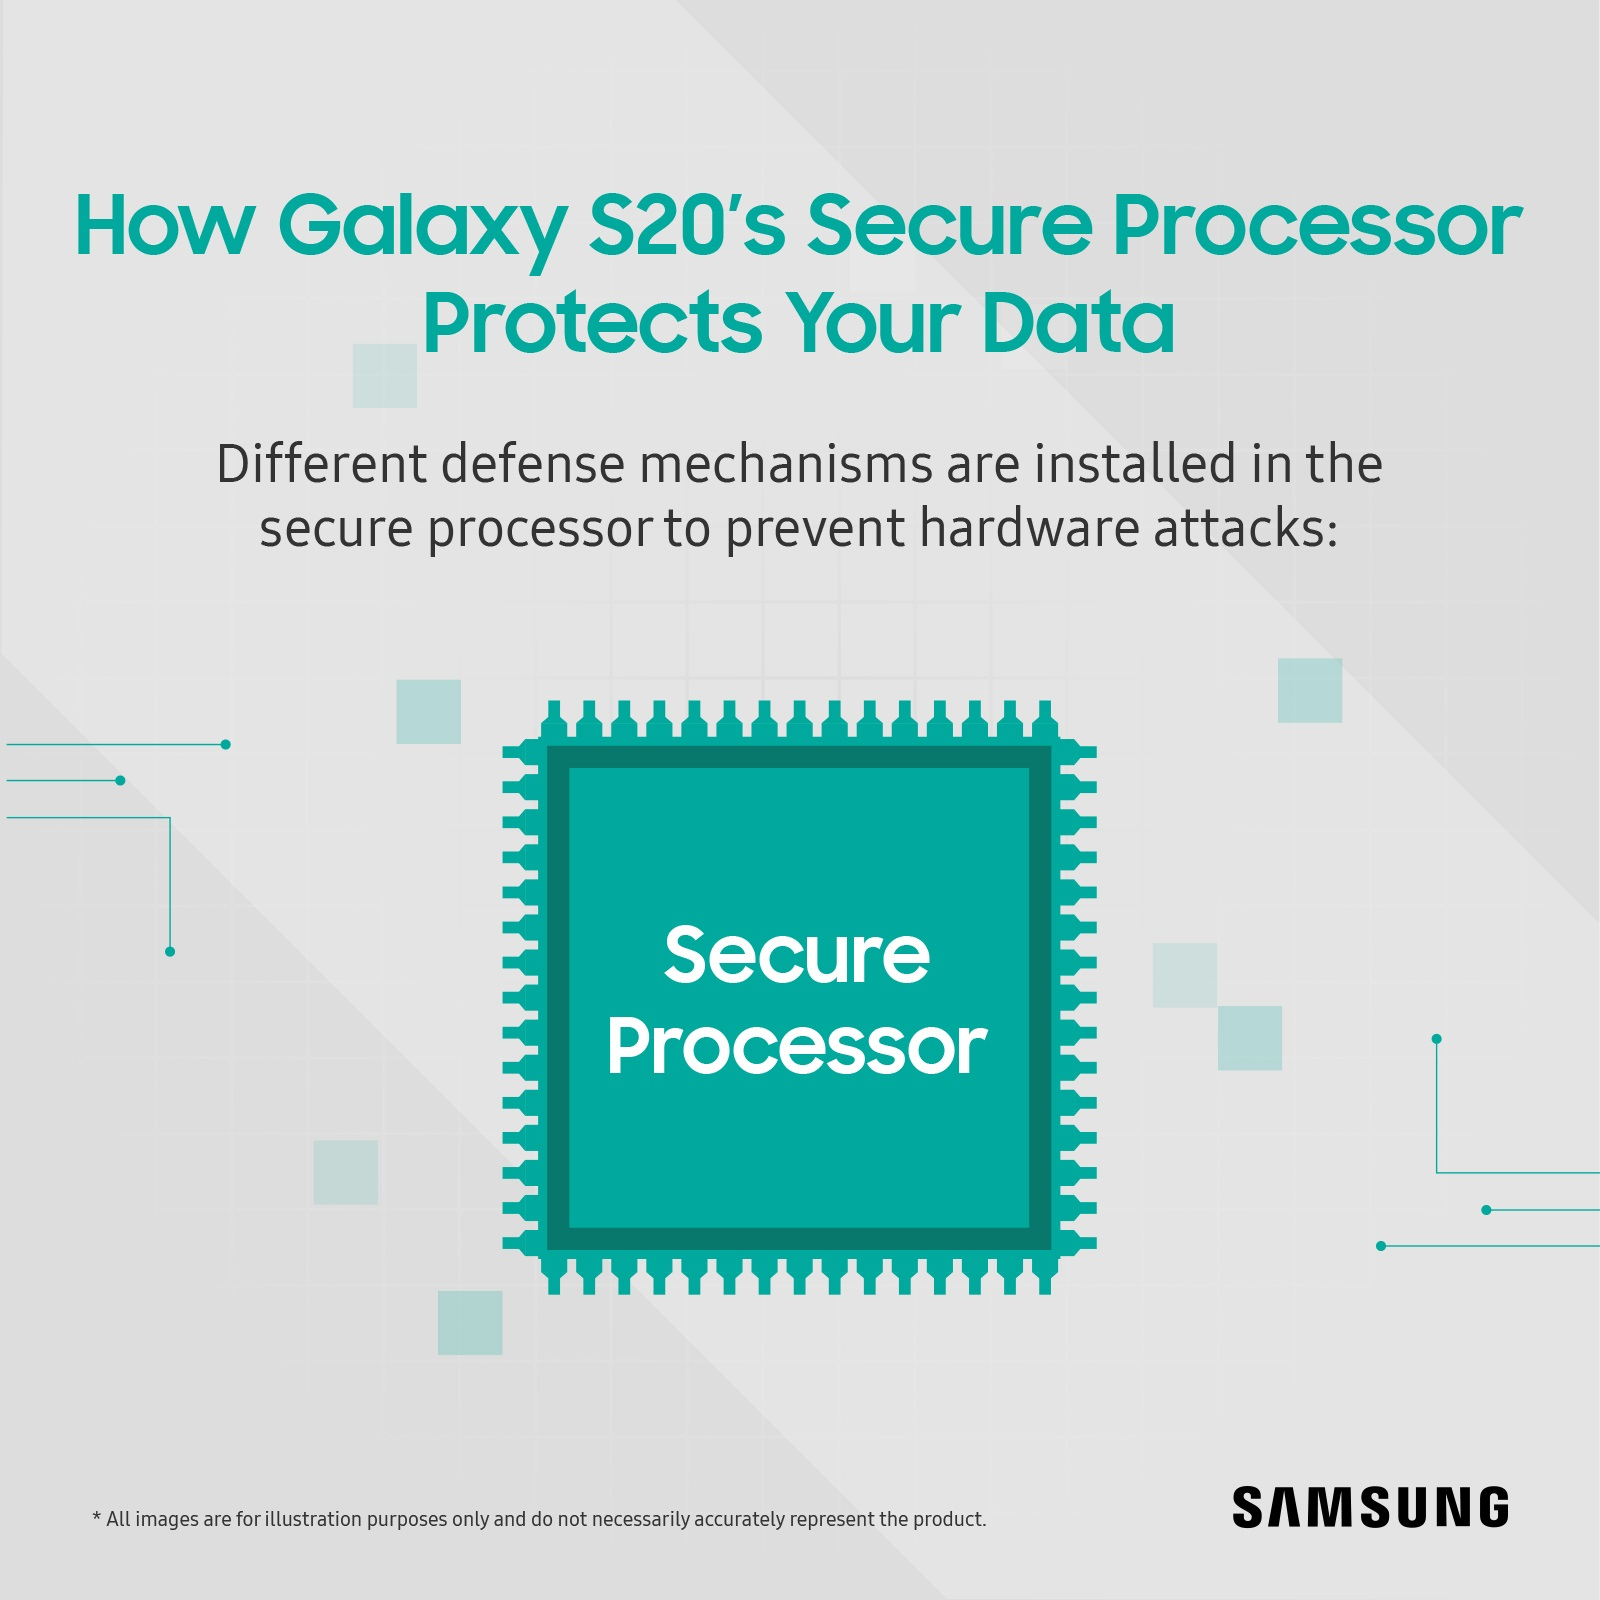 Strengthening Hardware Security with Galaxy S20's Secure Processor